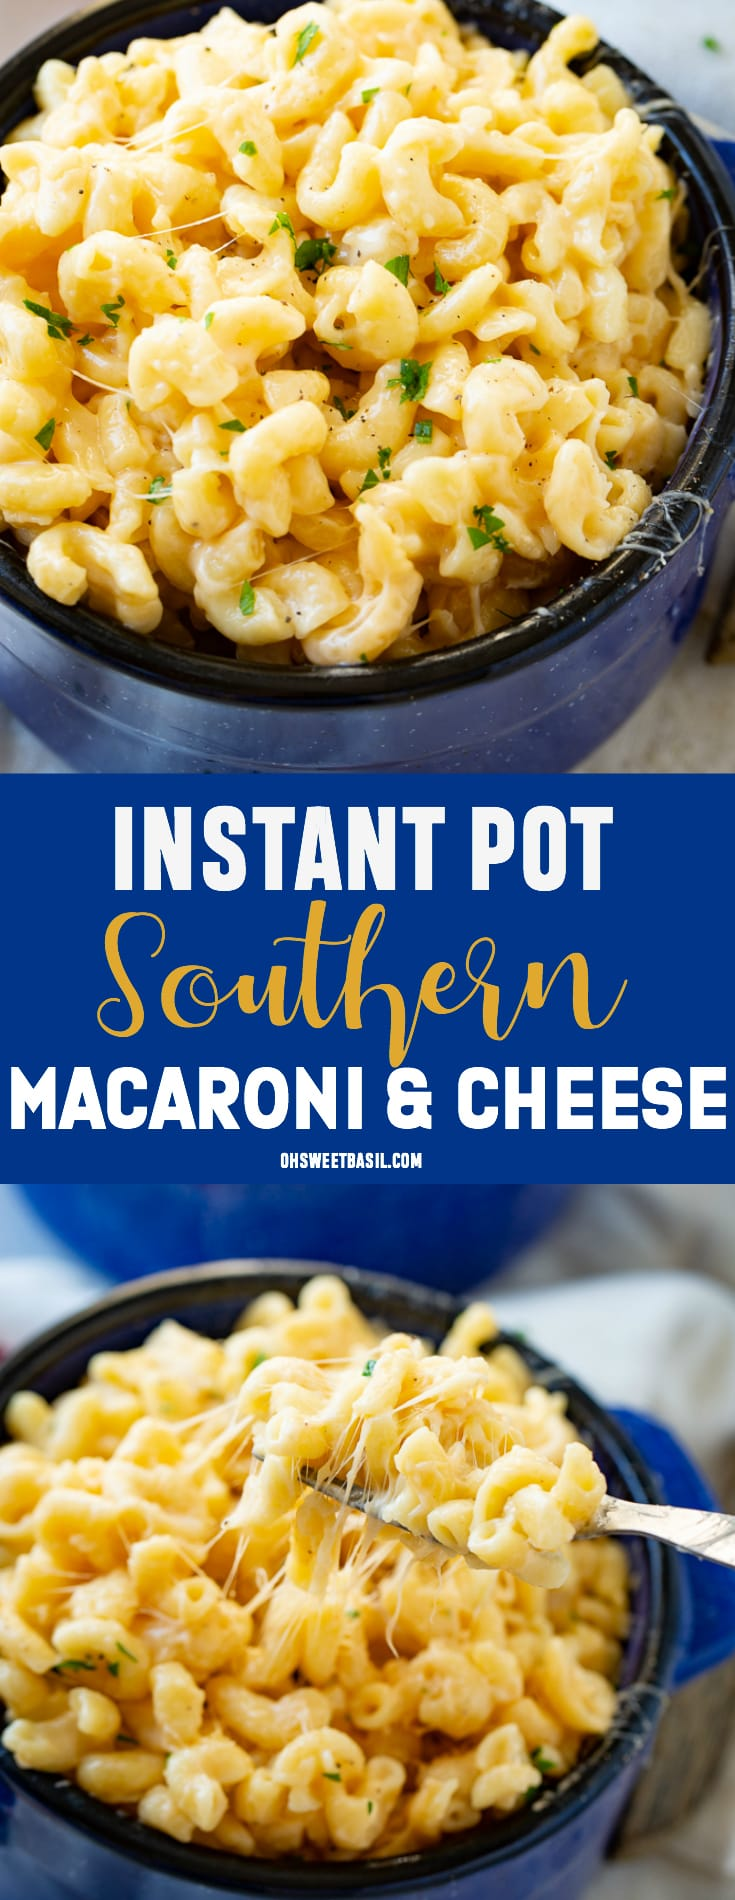 an instant pot full of creamy, cheesy instant pot macaroni and cheese